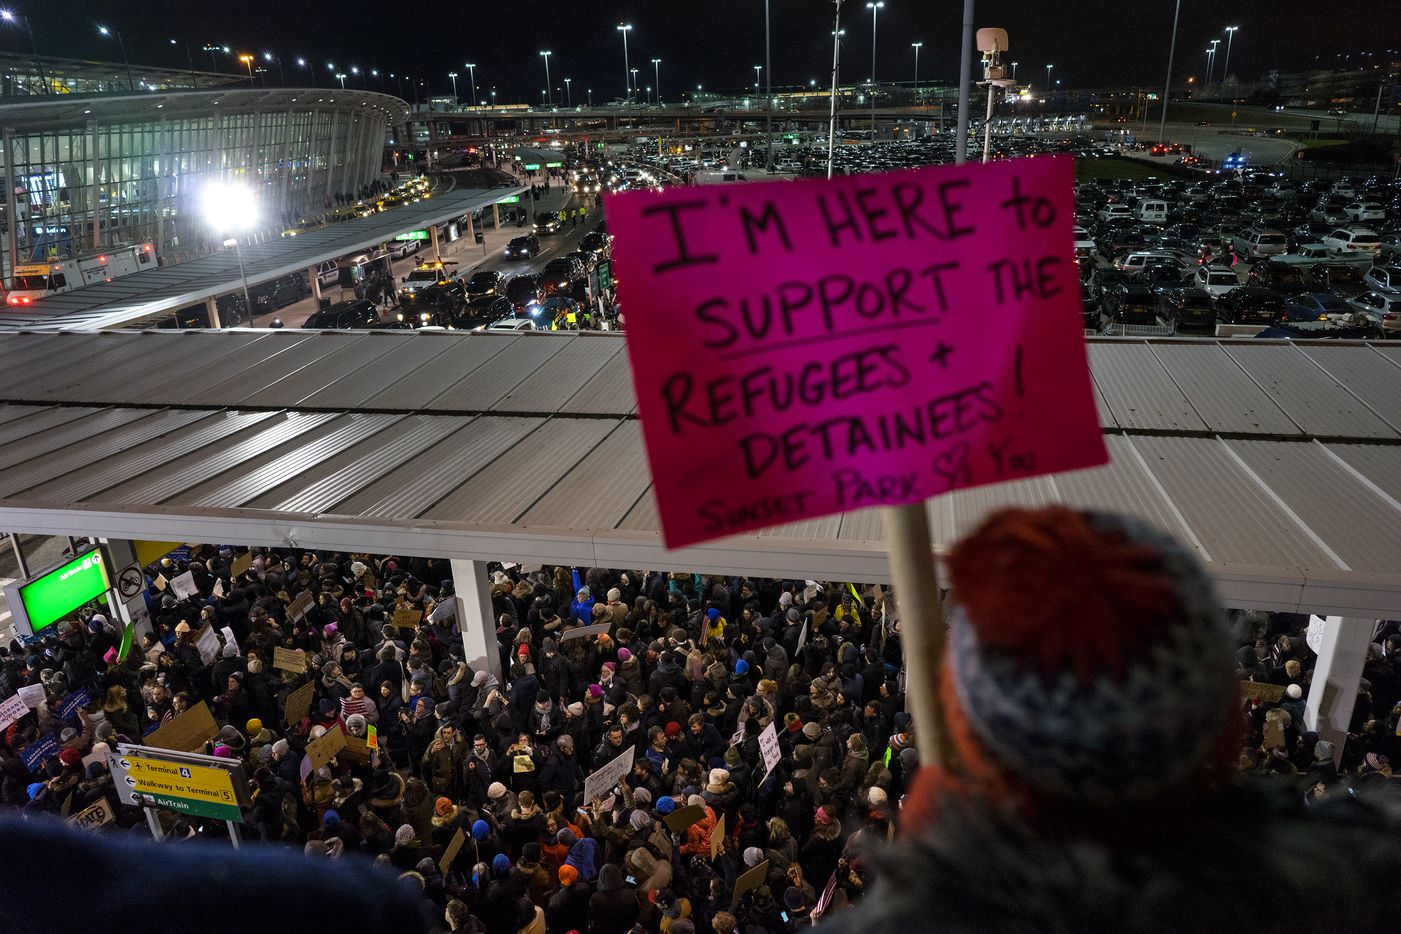 Protesters assemble at John F. Kennedy International Airport in New York, Saturday, Jan. 28, 2017 after earlier in the day two Iraqi refugees were detained while trying to enter the country. On Friday, Jan. 27, President Donald Trump signed an executive order suspending all immigration from countries with terrorism concerns for 90 days. Countries included in the ban are Iraq, Syria, Iran, Sudan, Libya, Somalia and Yemen, which are all Muslim-majority nations.